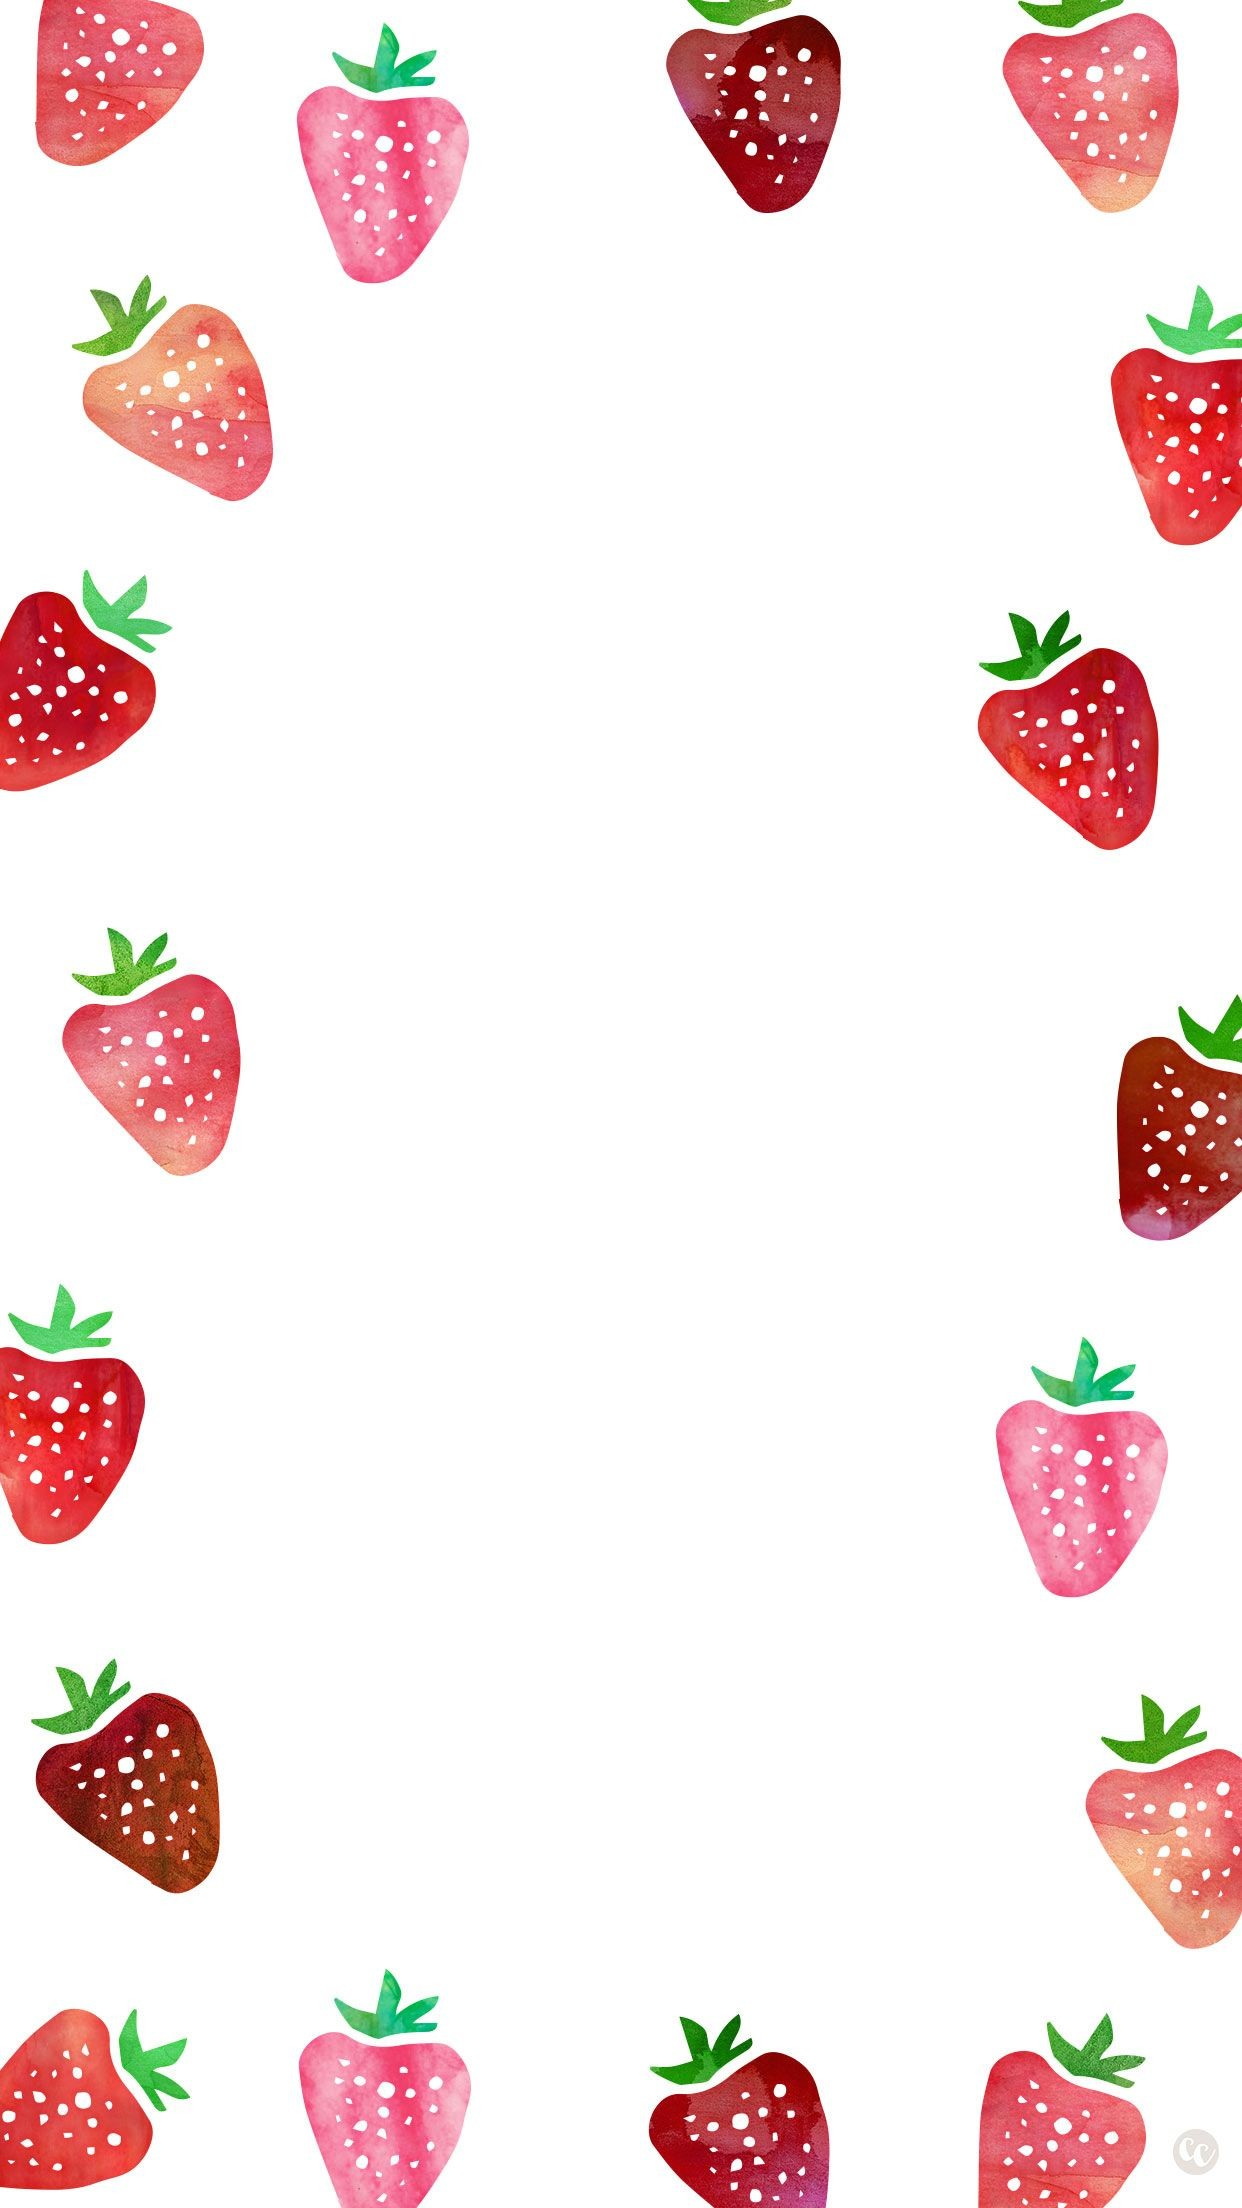 1242x2208 Dress up your smartphone with this cute strawberry wallpaper! Also  available for desktop and iPad. Download here.